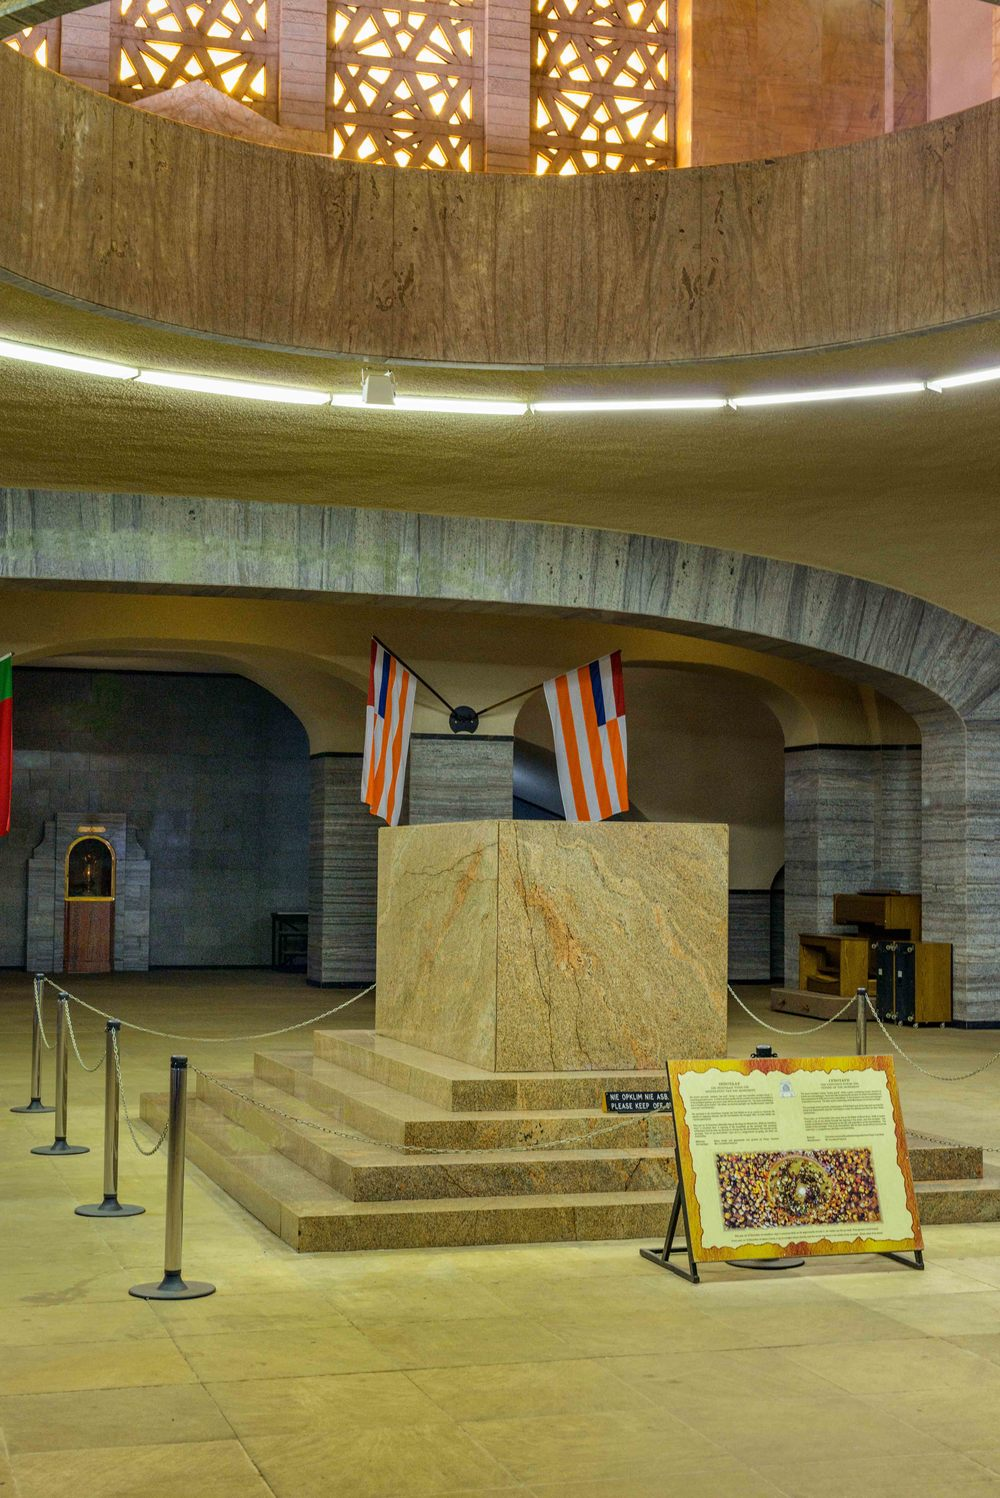 The Cenotaph, situated in the centre of the Cenotaph Hall, is the central focus of the monument.